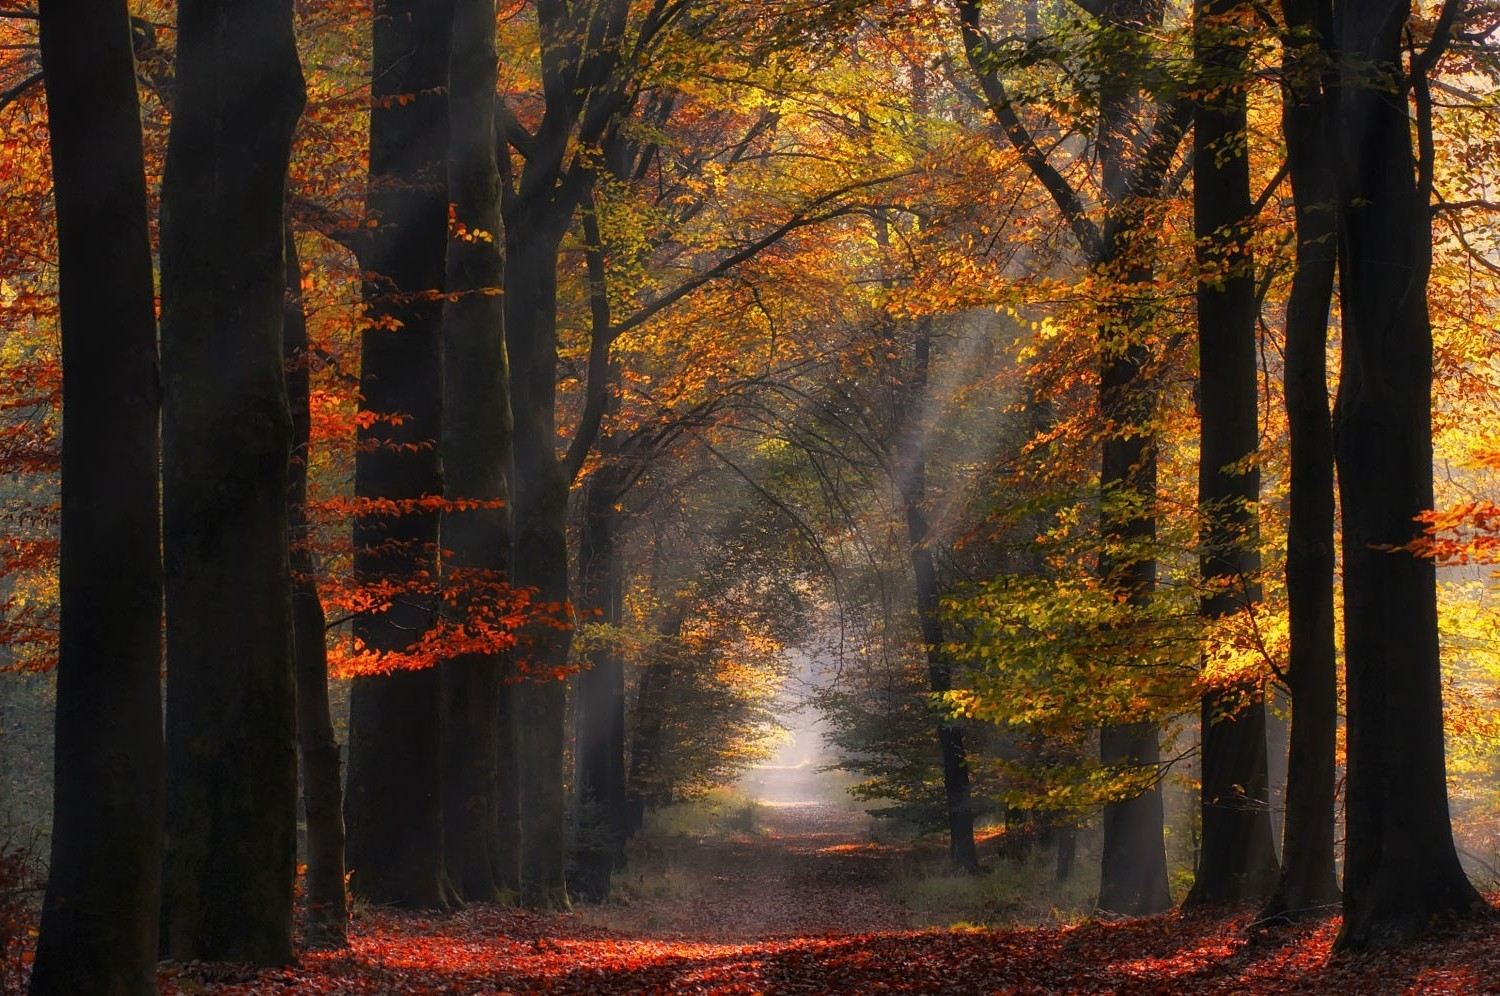 Fall Trees Desktop Wallpaper Nature Landscape Colorful Forest Path Sun Rays Mist